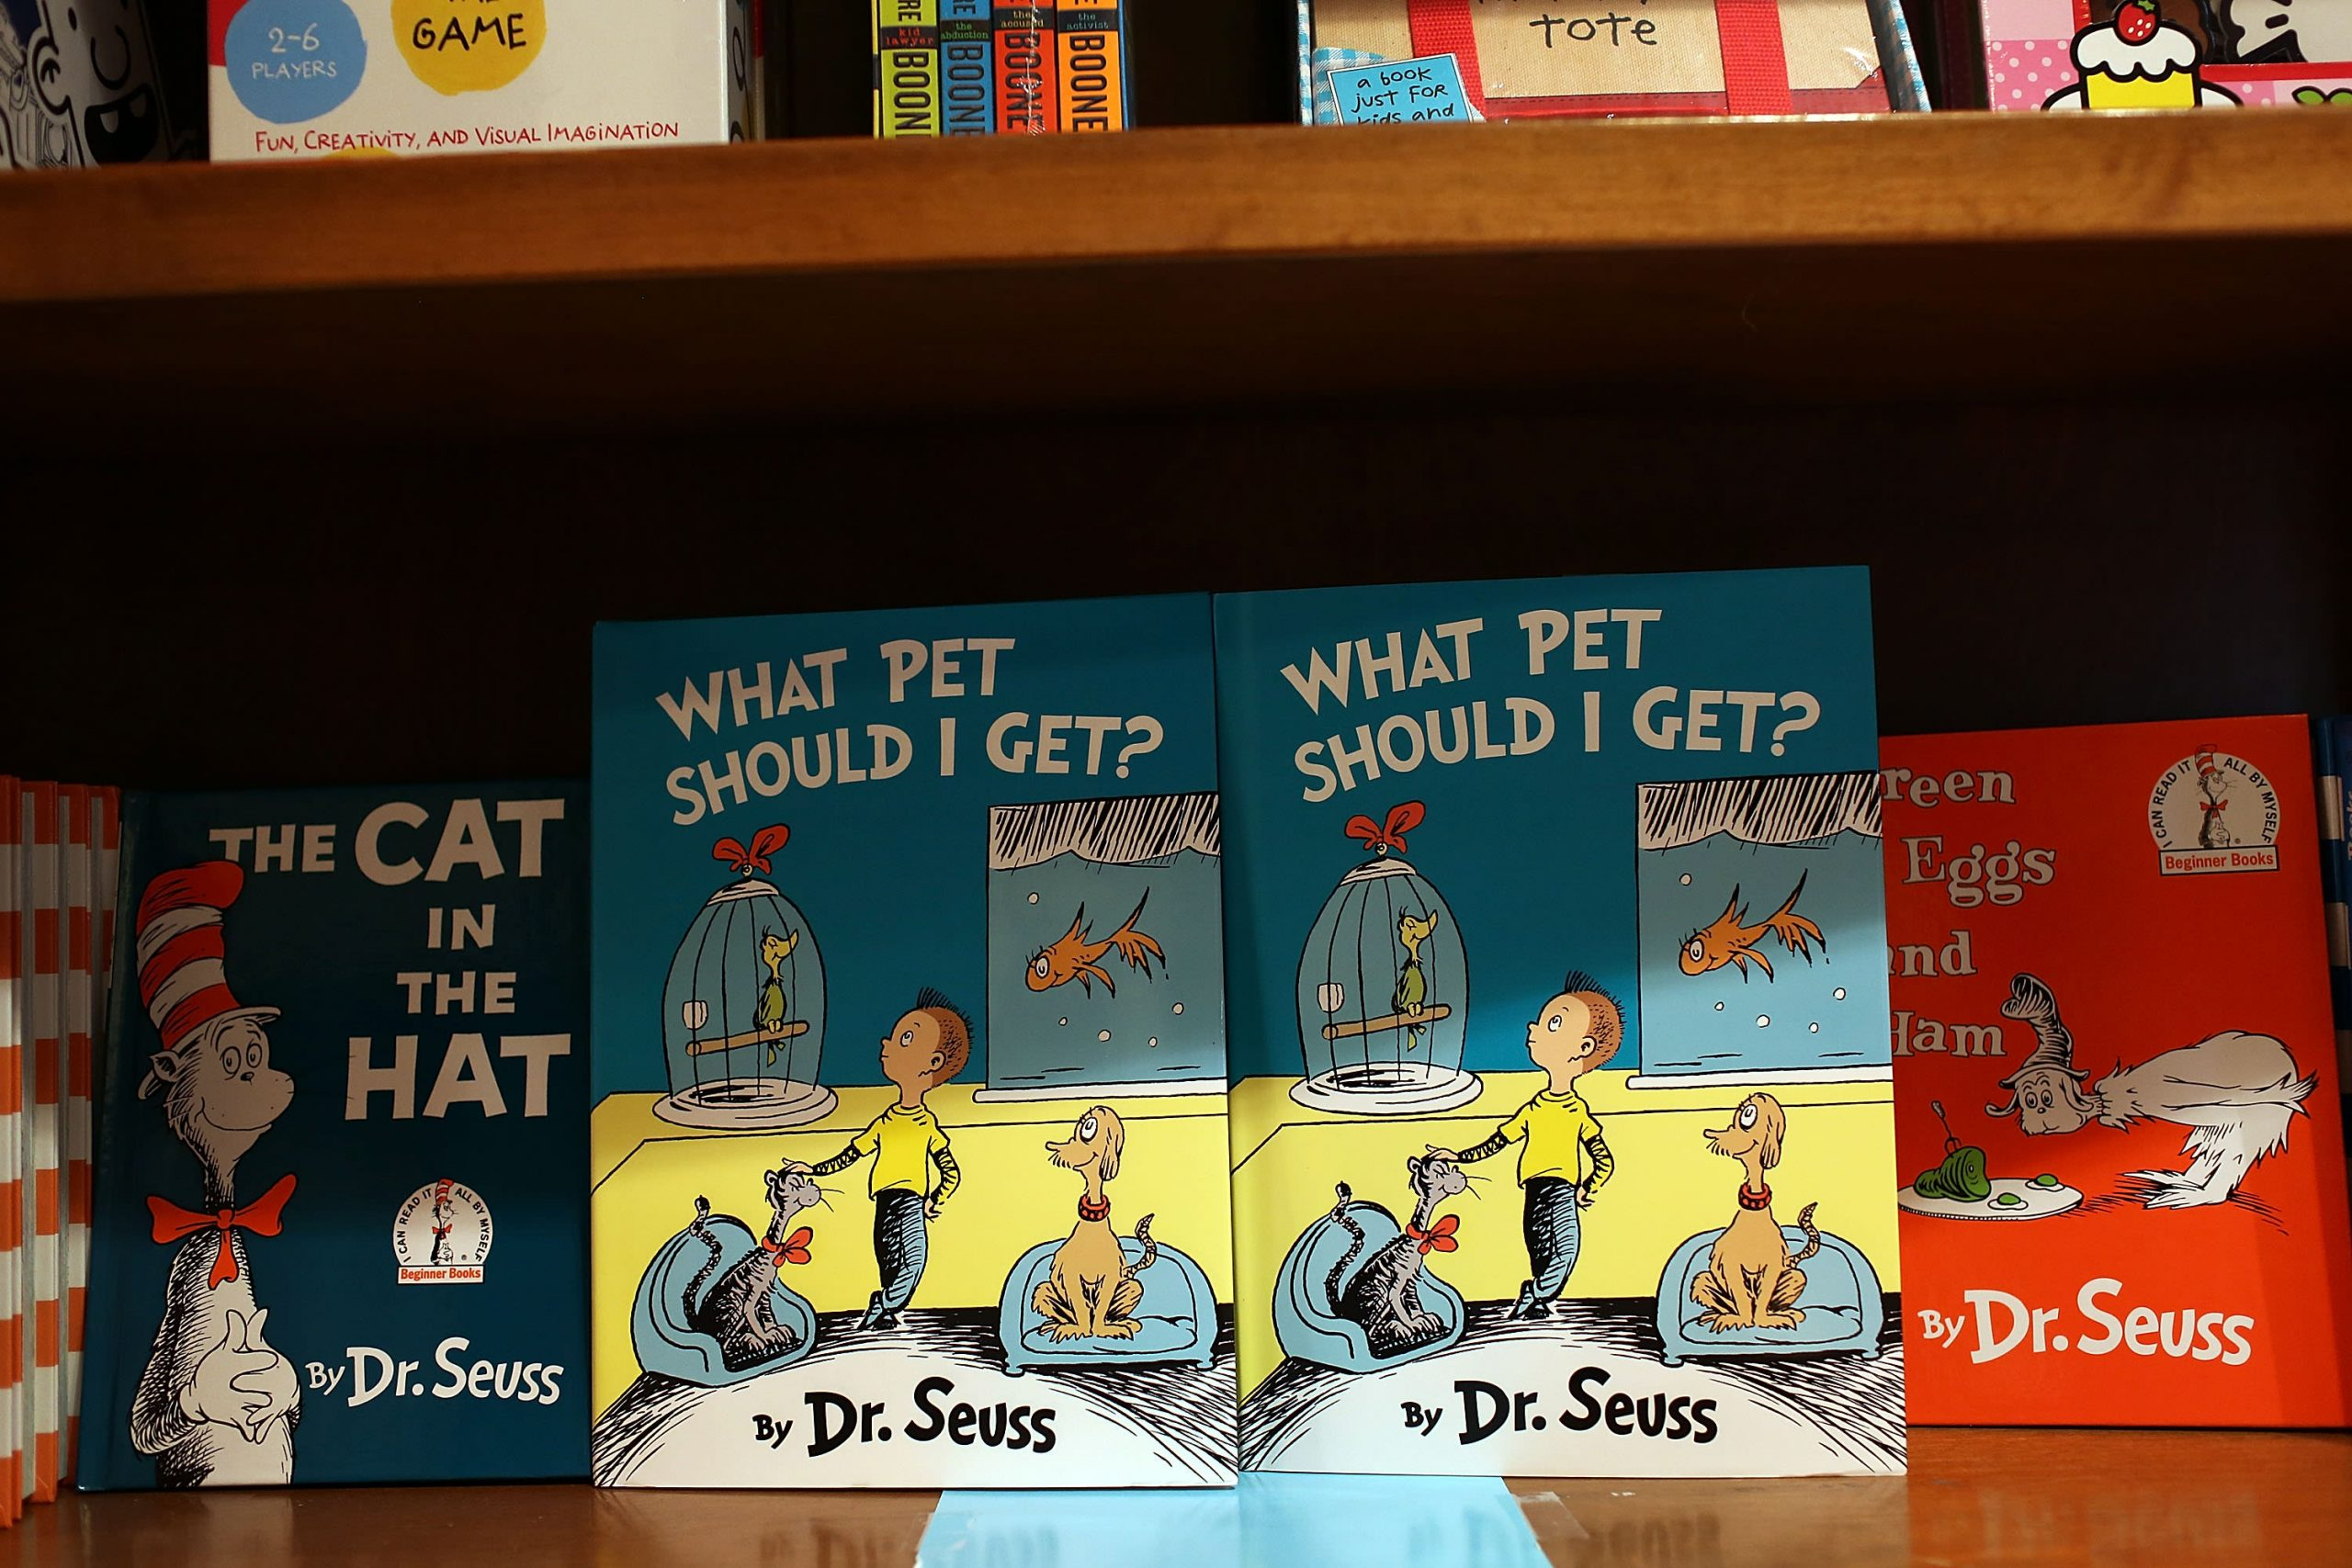 Dr. Seuss books shoot to the top of Amazon's bestseller list